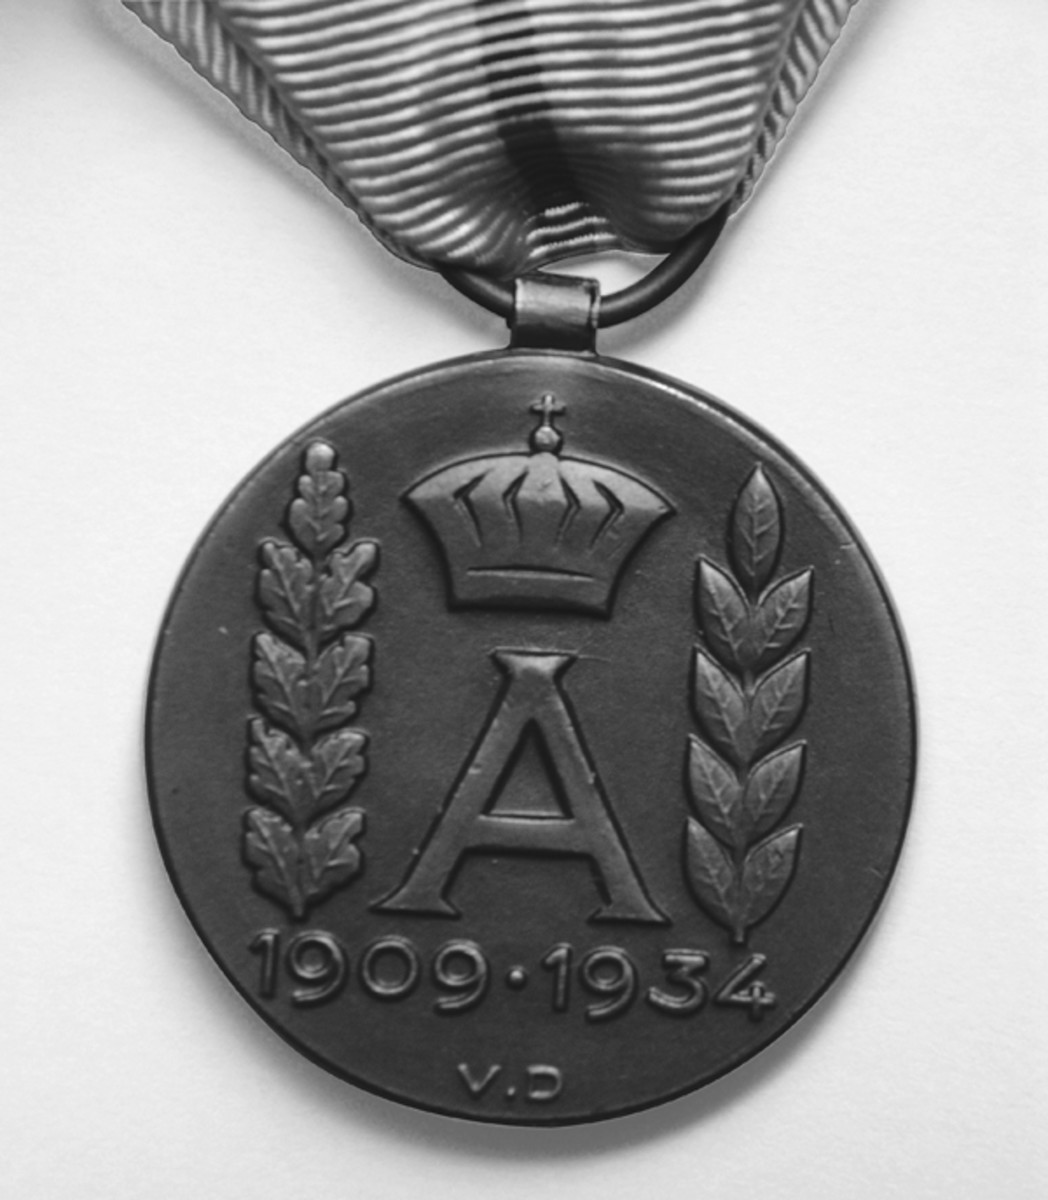 Reverse of the Commemorative Medal showing the designer's initials 'VD' (Victor Demanet) just below the letter 'A'.